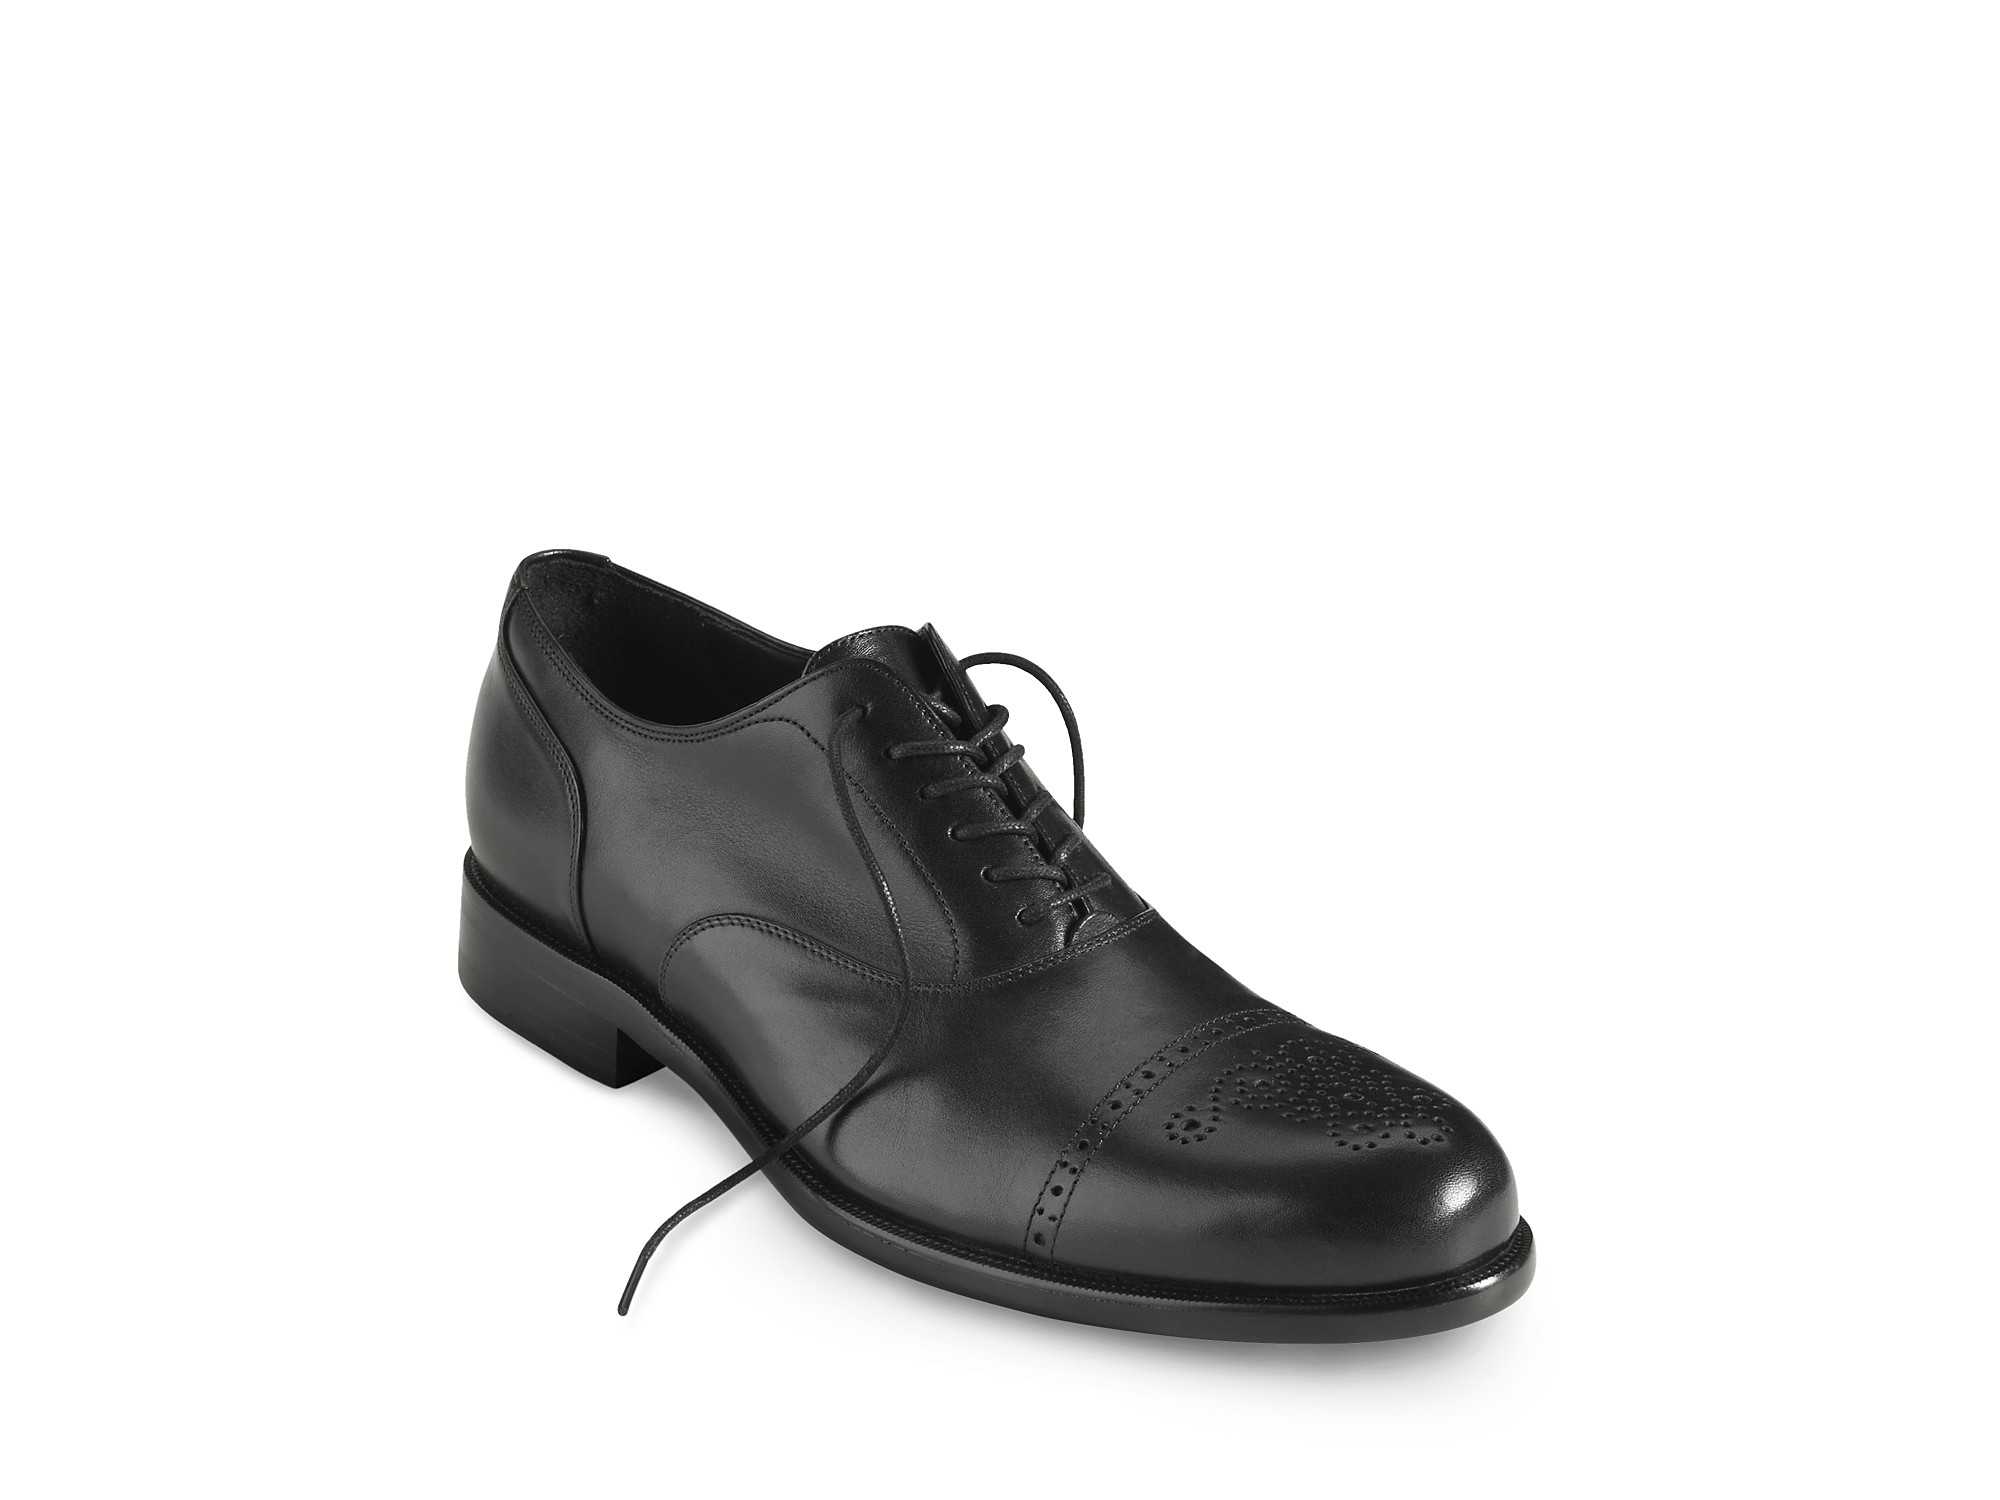 Cole Haan Nike Airu2122 Pitney Cap Toe Oxford Dress Shoe In Black For Men (black Calf) | Lyst